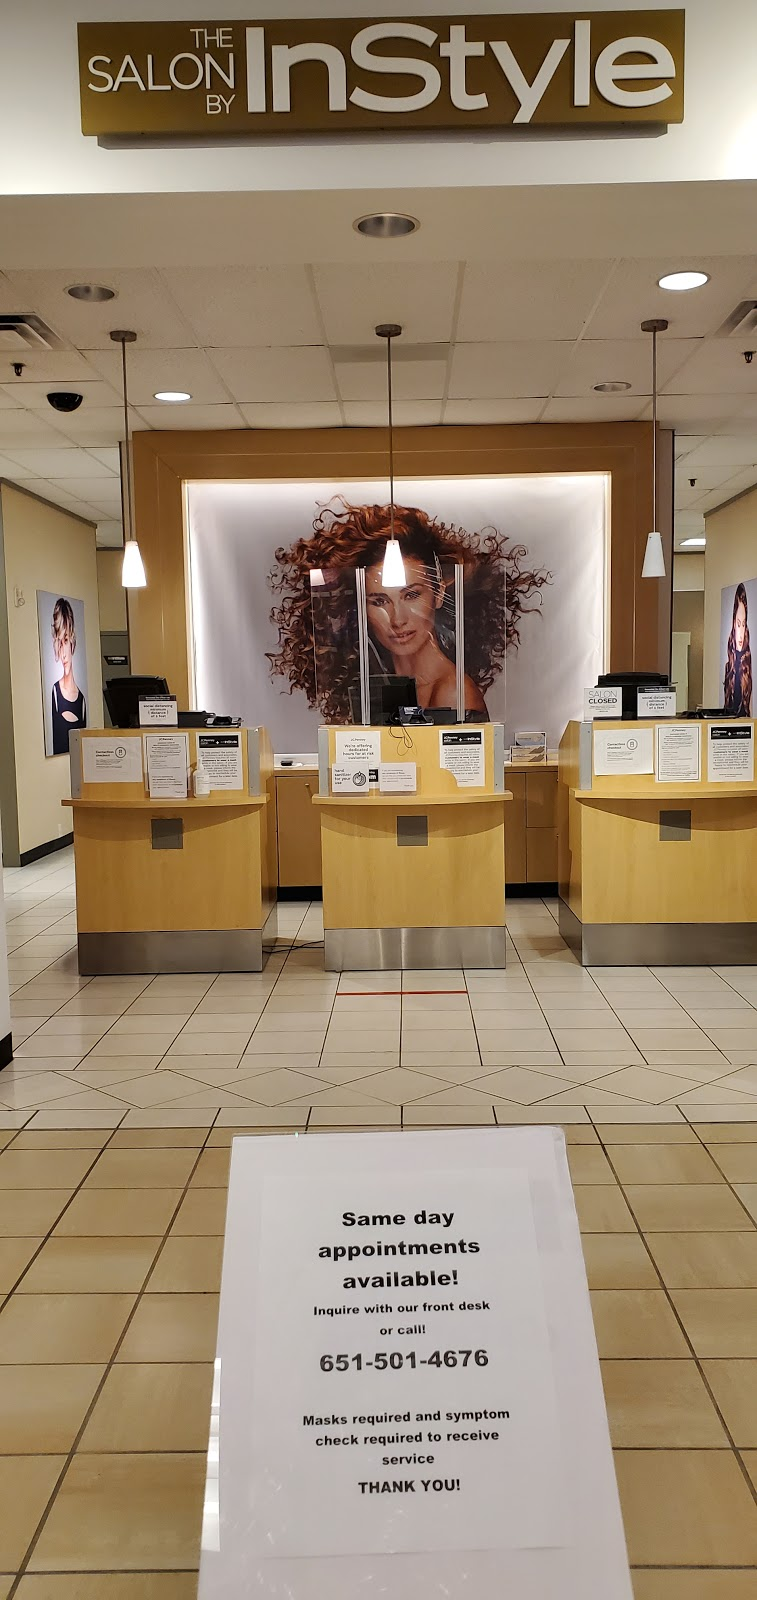 The SALON by InStyle Inside JCPenney - hair care    Photo 9 of 10   Address: 8348 Tamarack Village, Woodbury, MN 55125, USA   Phone: (651) 501-4676